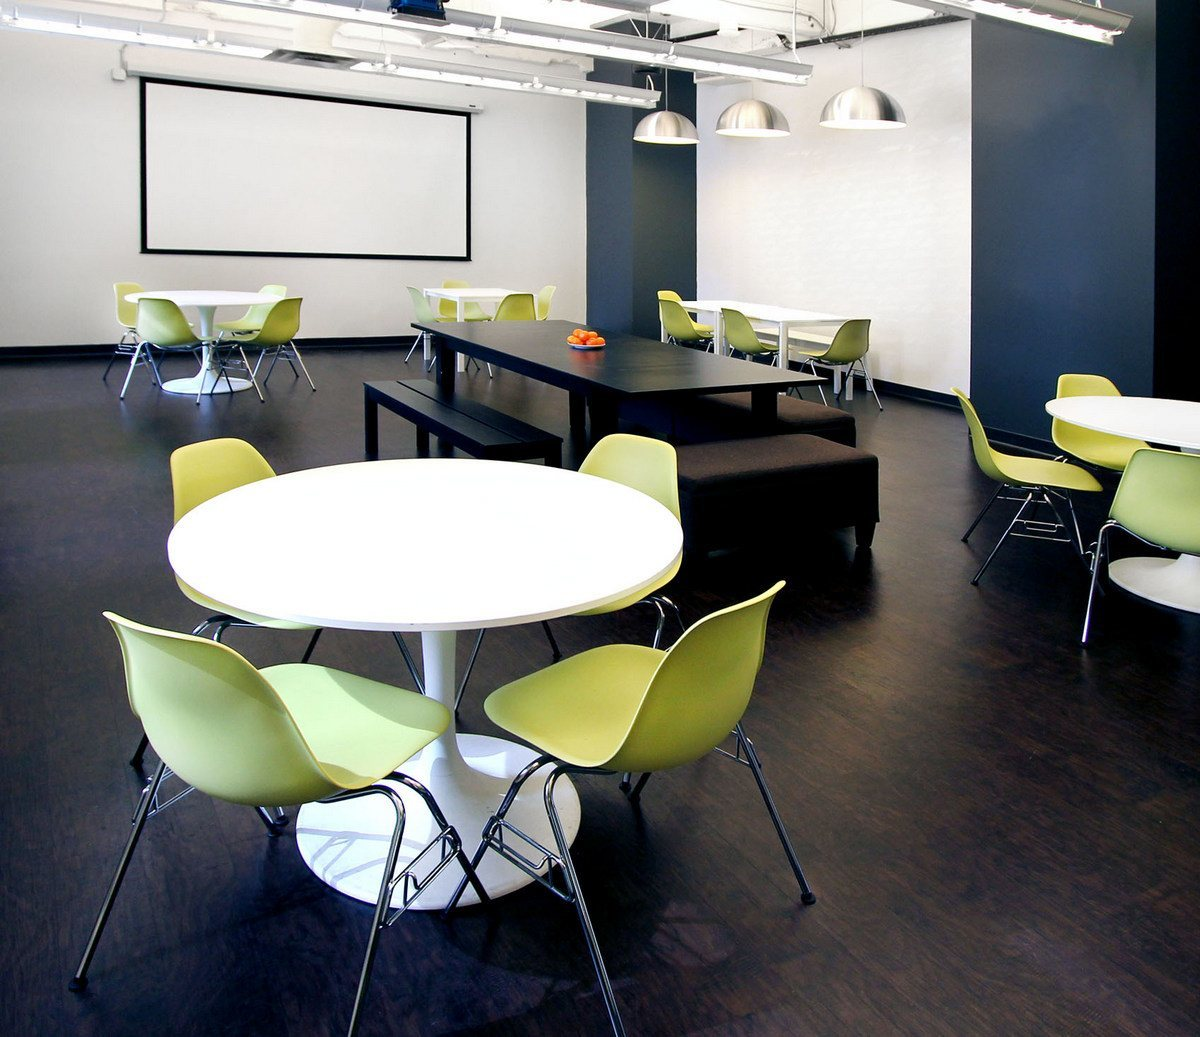 Zillows Homes: Inside Zillow's San Francisco Offices